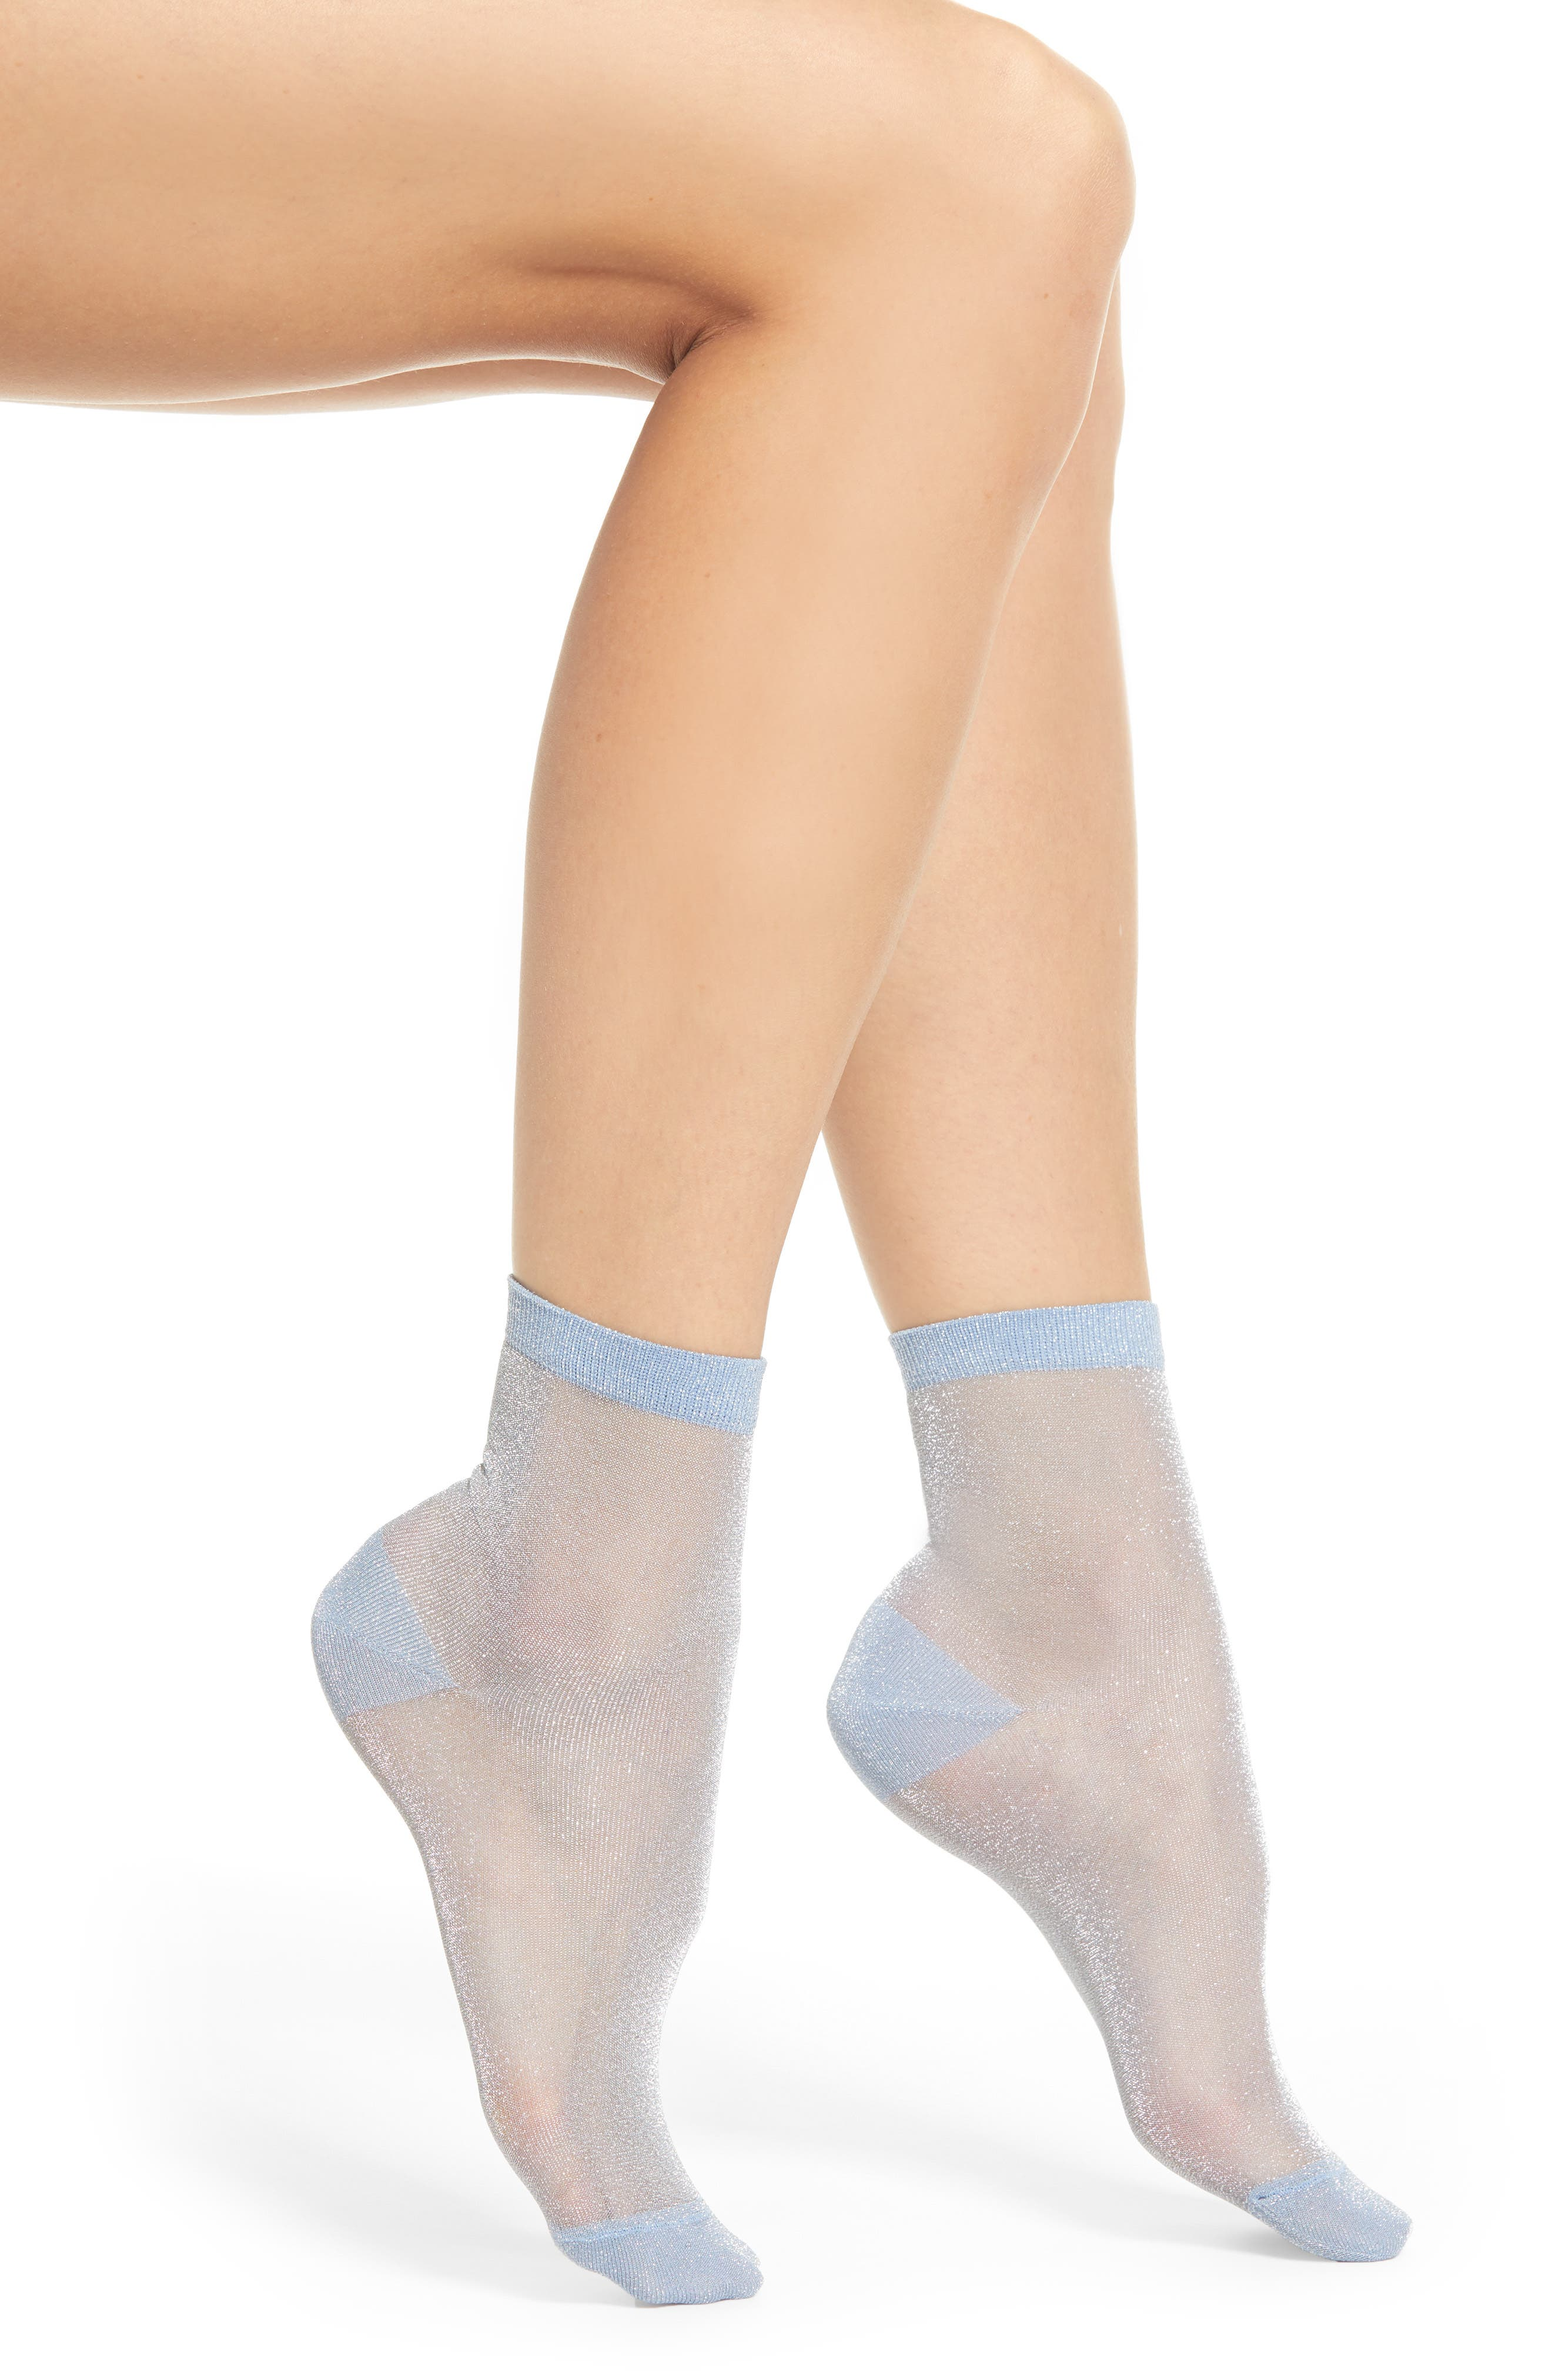 x Atlantic-Pacific Shimmer Ankle Socks,                             Main thumbnail 1, color,                             420